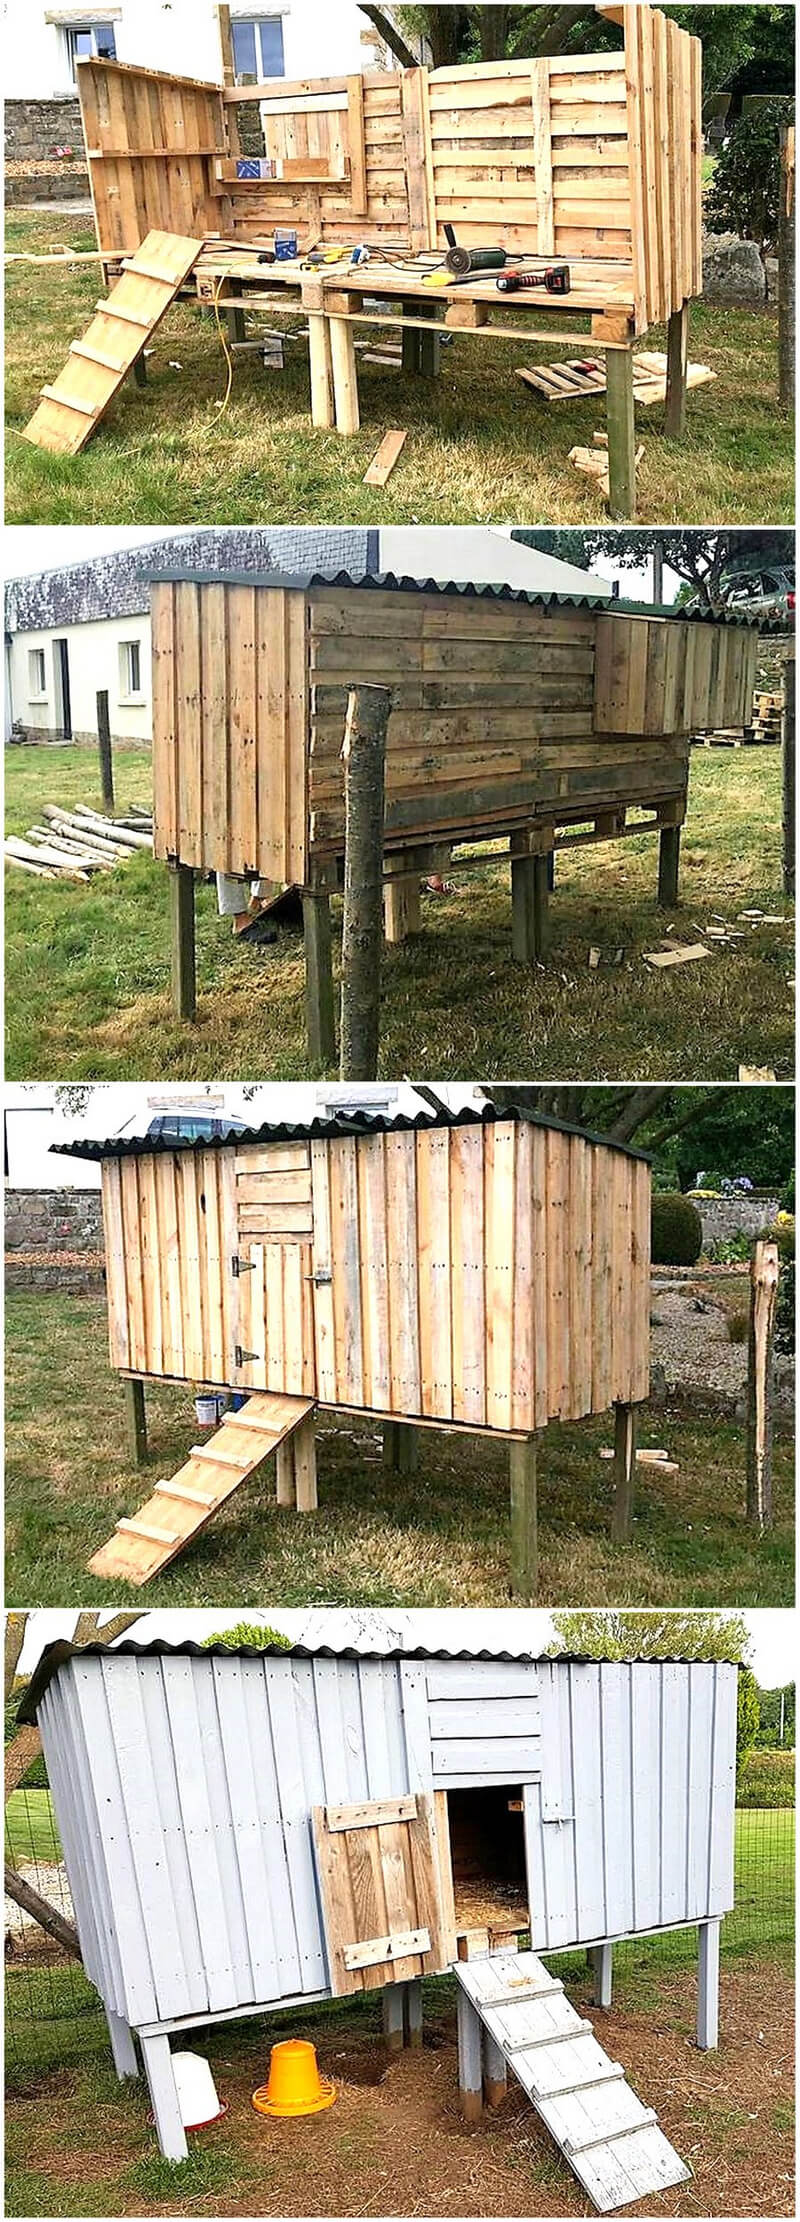 diy wooden pallet Henhouse